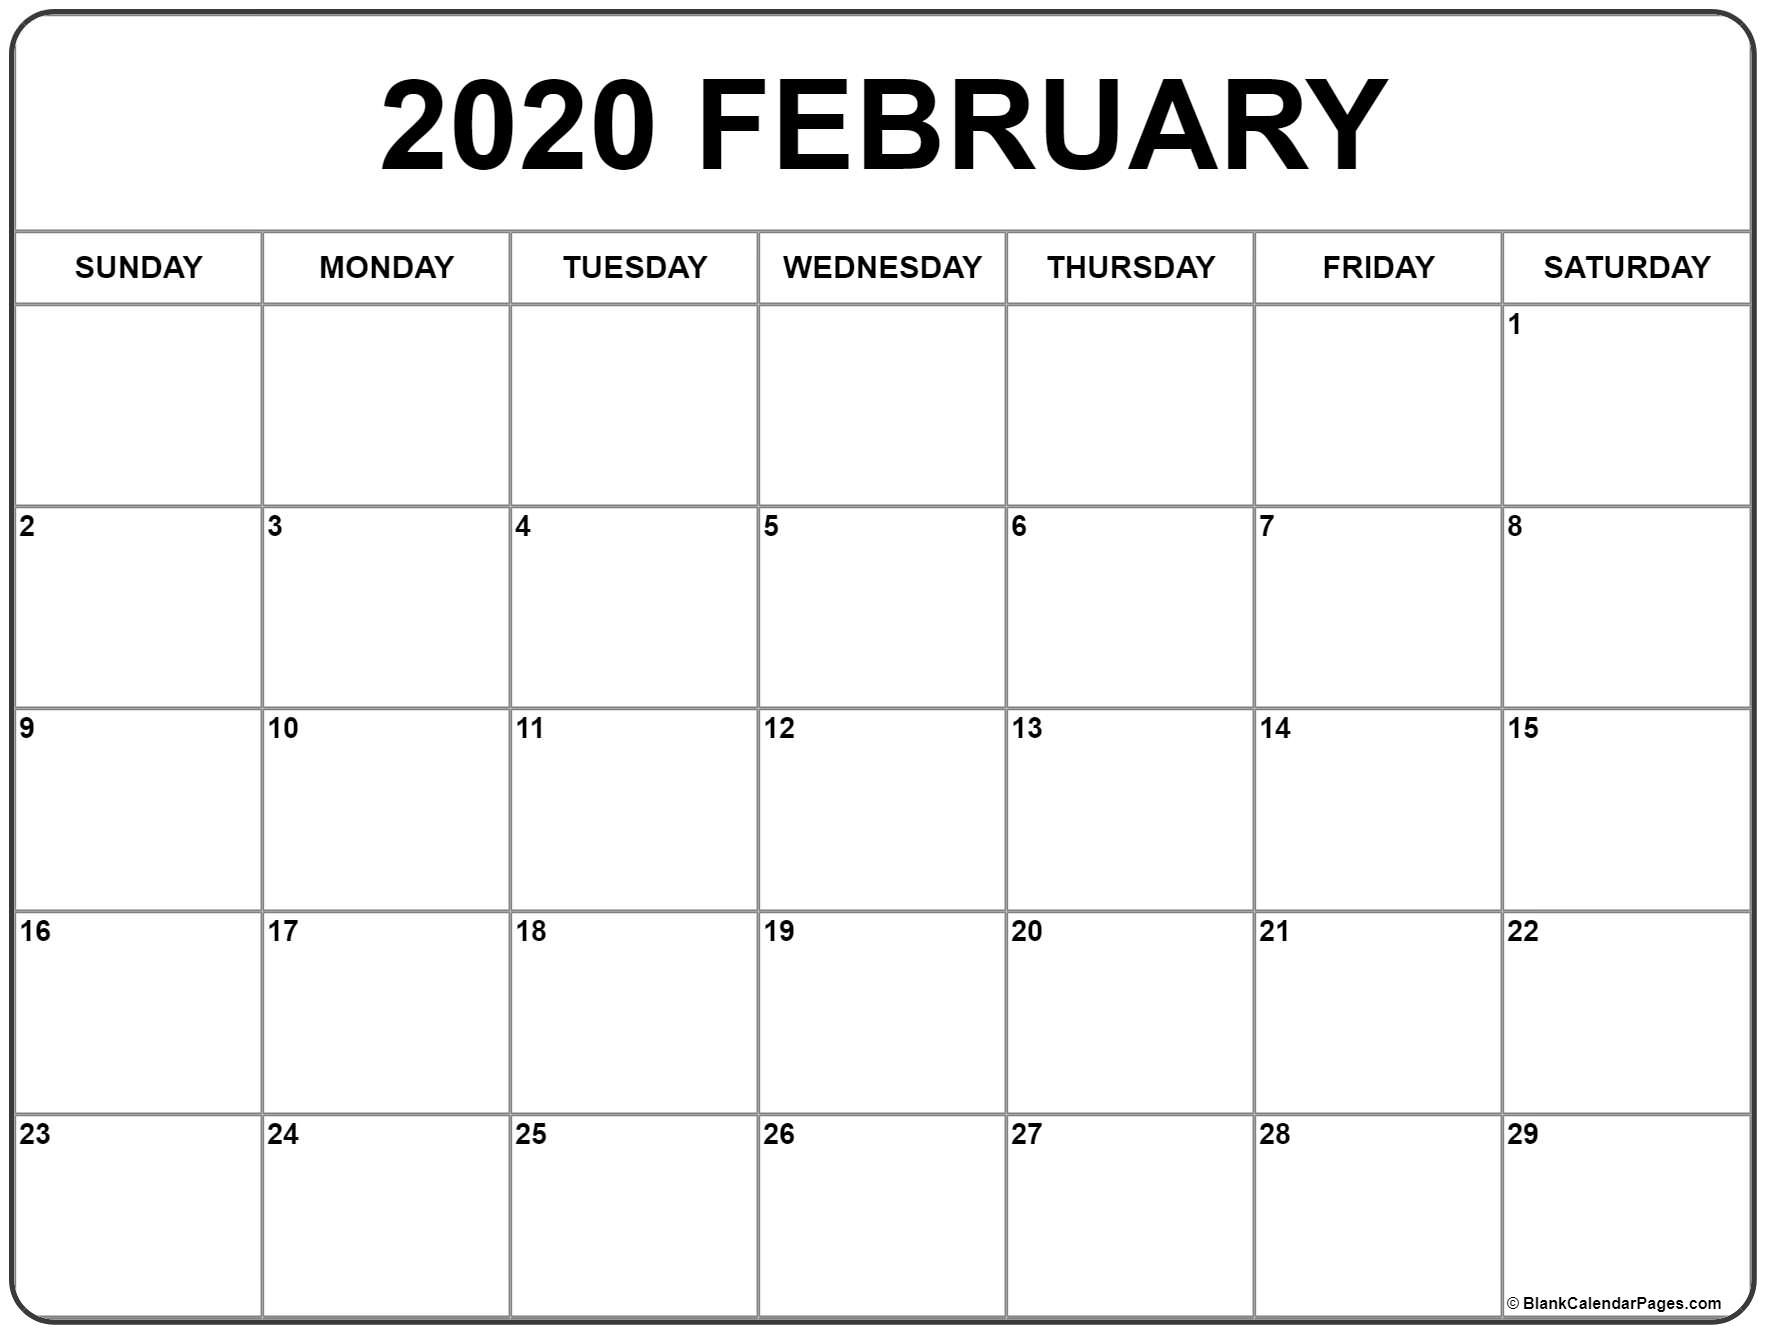 February 2020 Calendar | Free Printable Monthly Calendars  Printable February 2020 Calendar